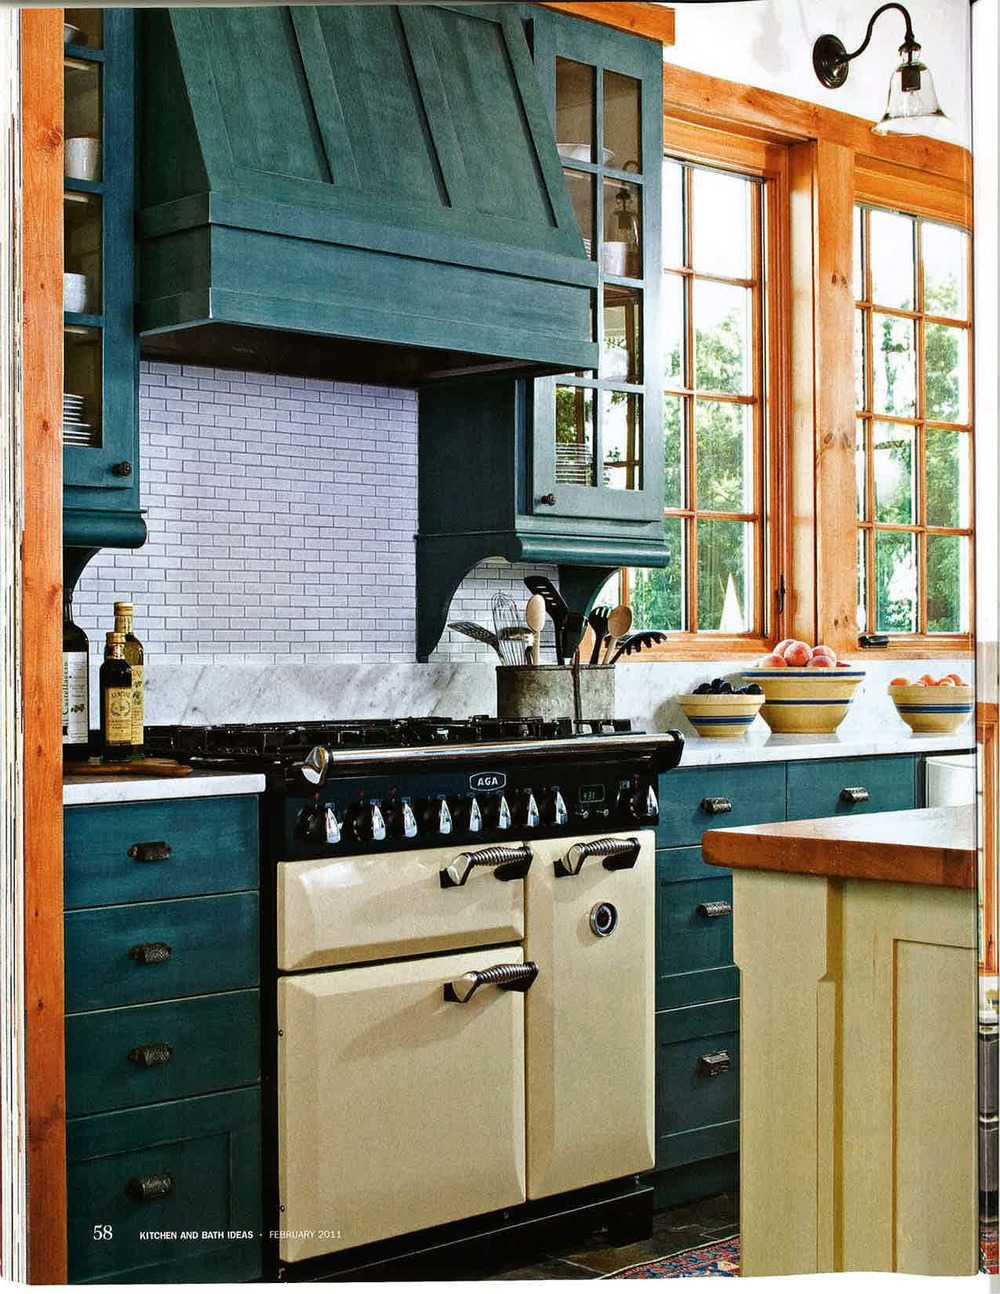 Feb2011_KitchenAndBathIdeas_Page_5.jpg